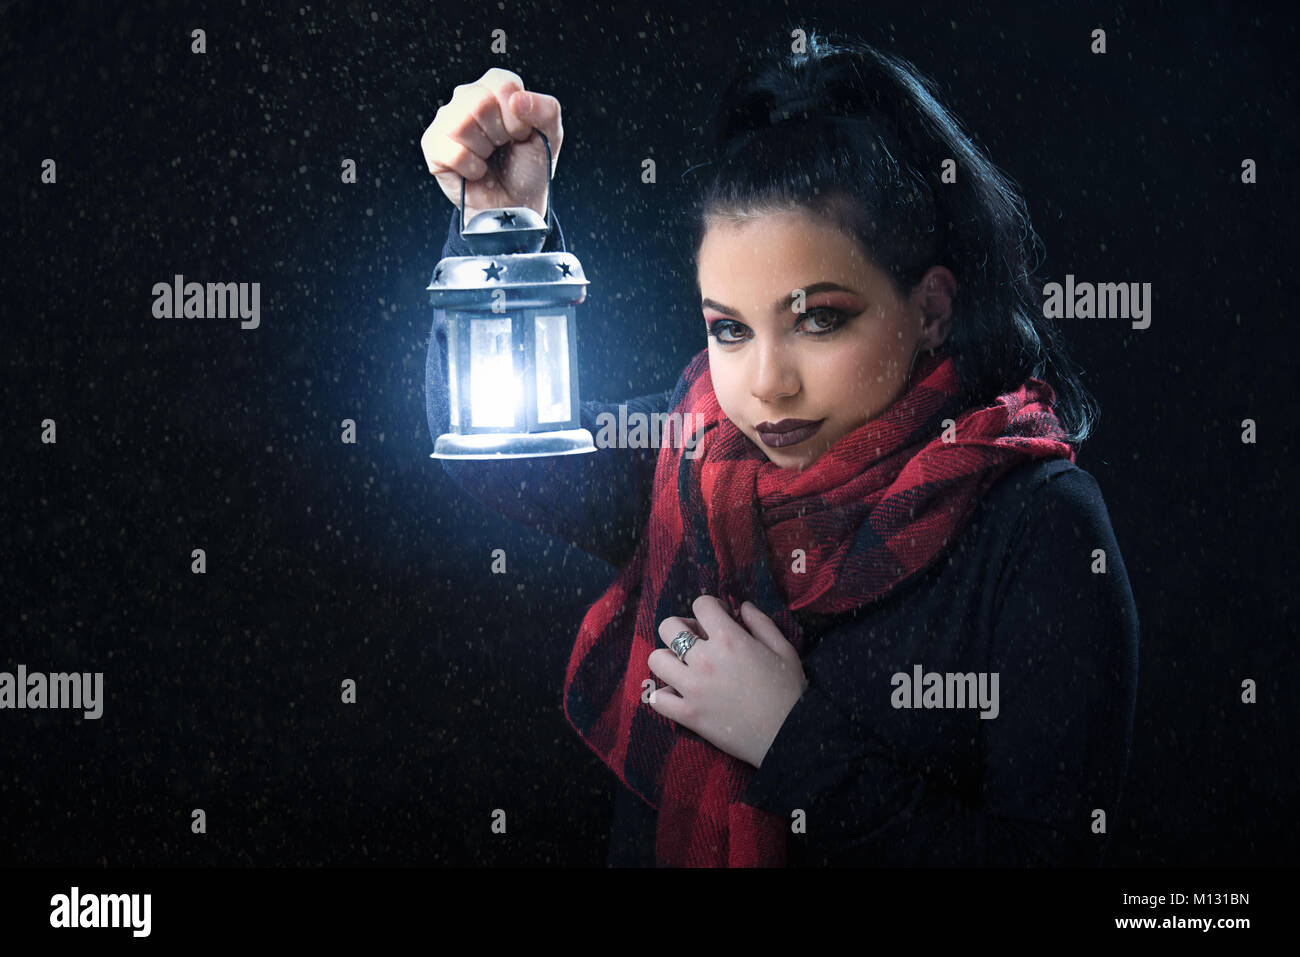 Girl holding the lamp while snowing Stock Photo, Royalty Free Image ... for Girl Holding Lamp  186ref